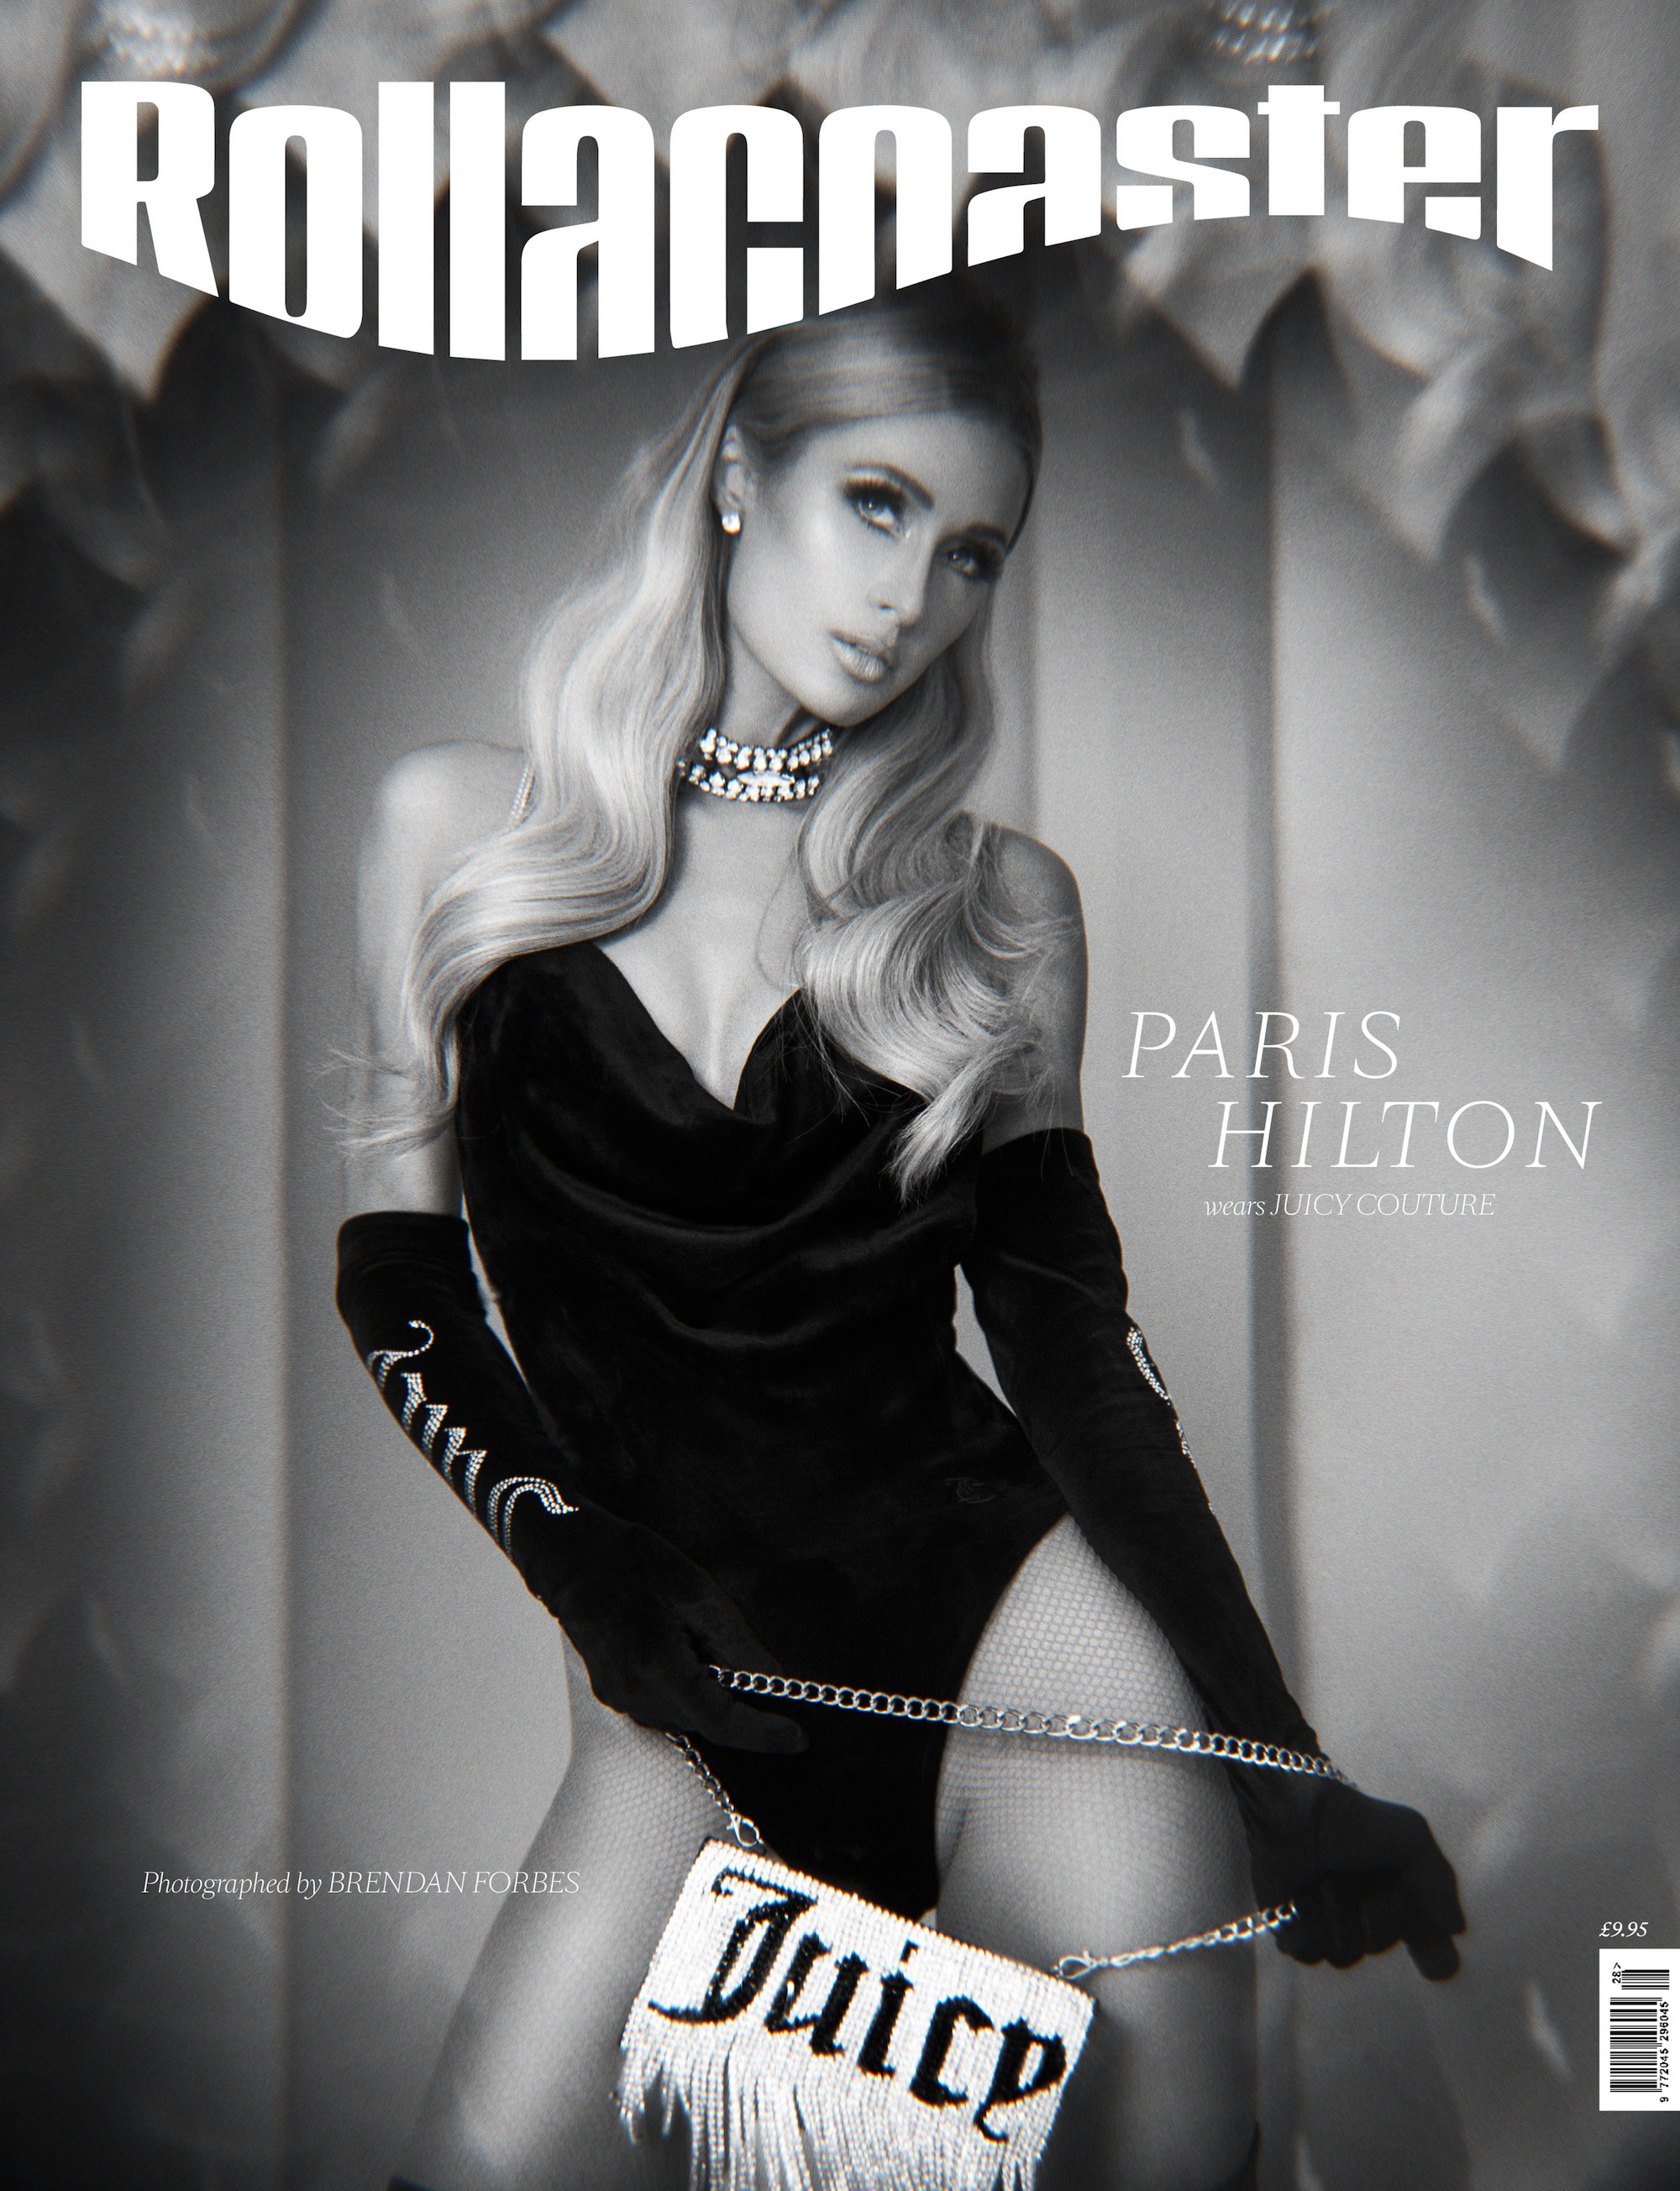 Paris Hilton for the SS20 cover of Rollacoaster